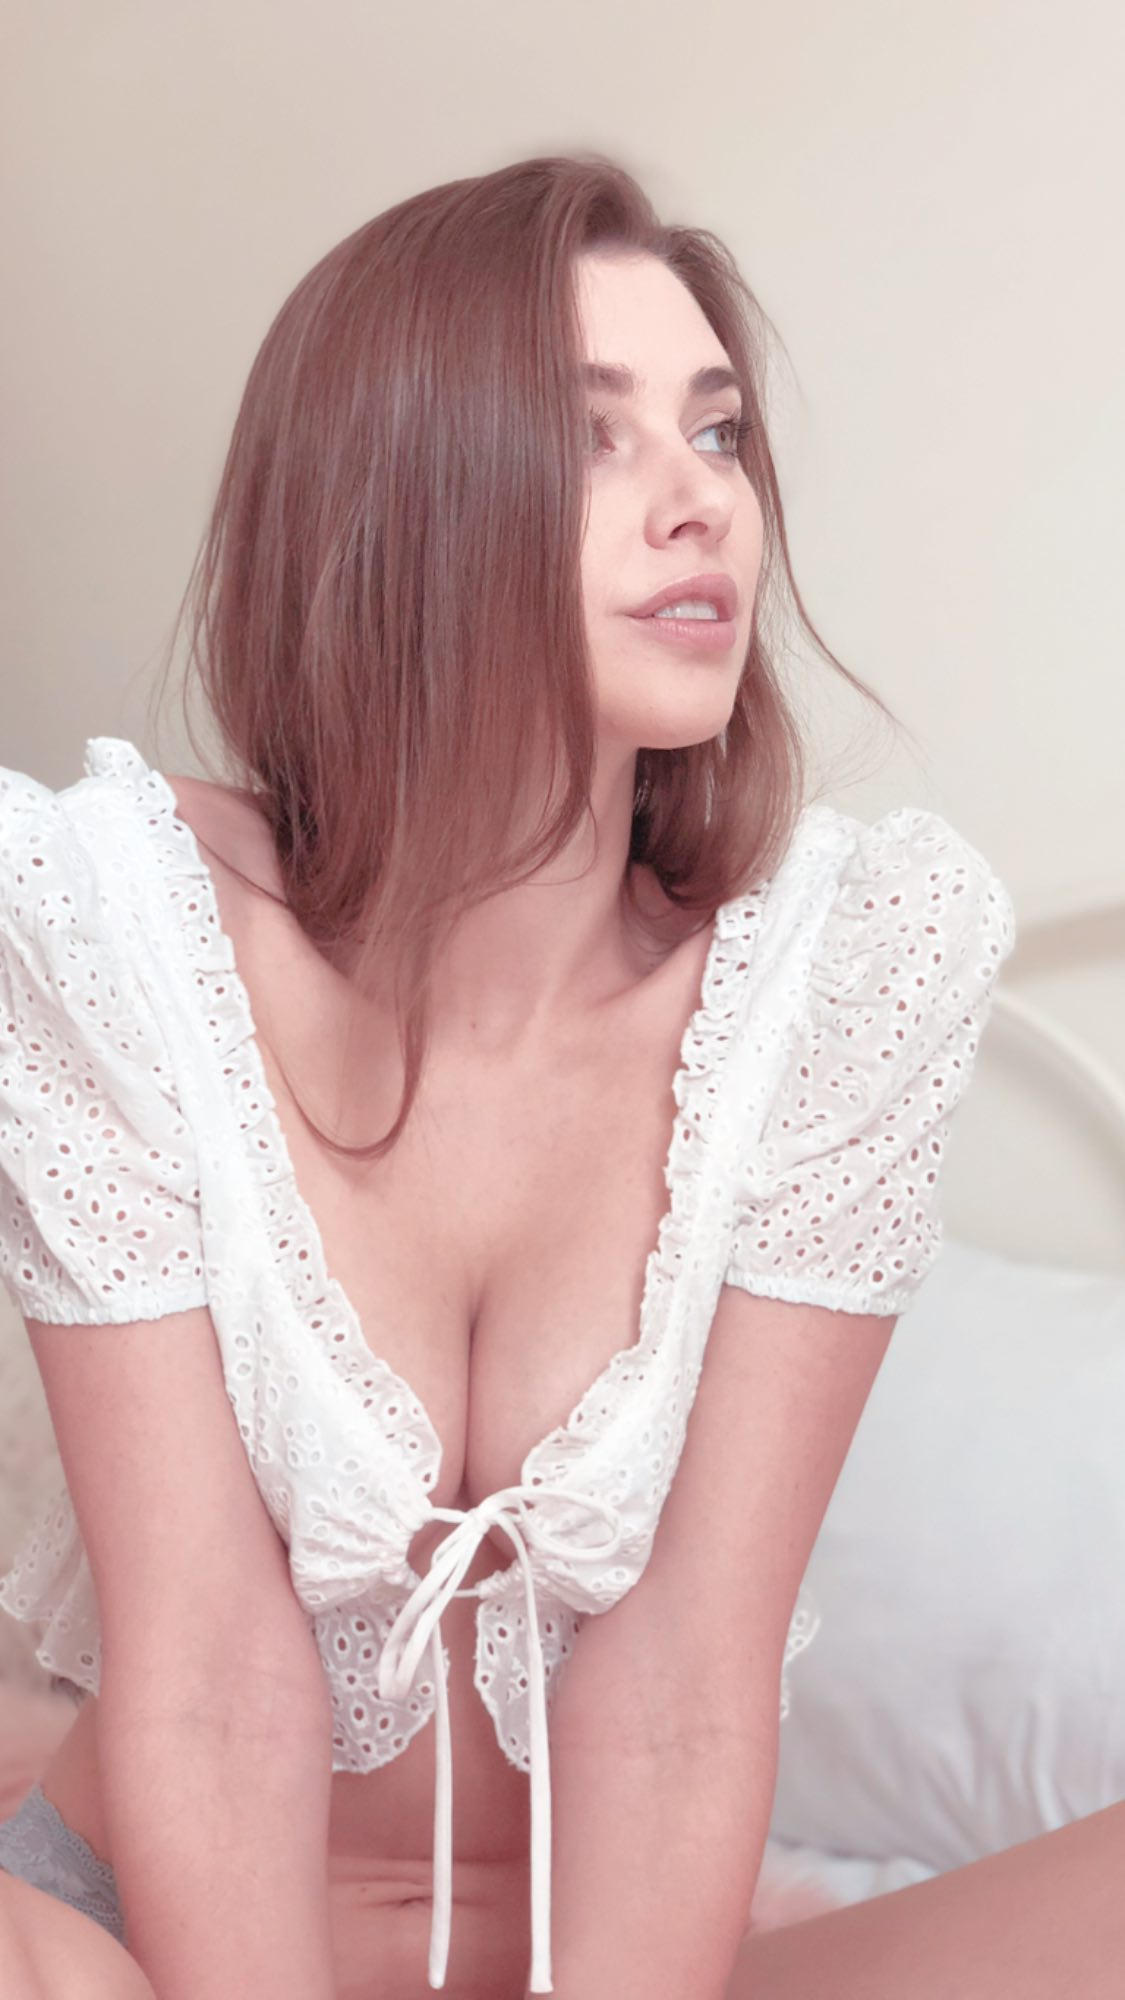 Mollyx Onlyfans 0142